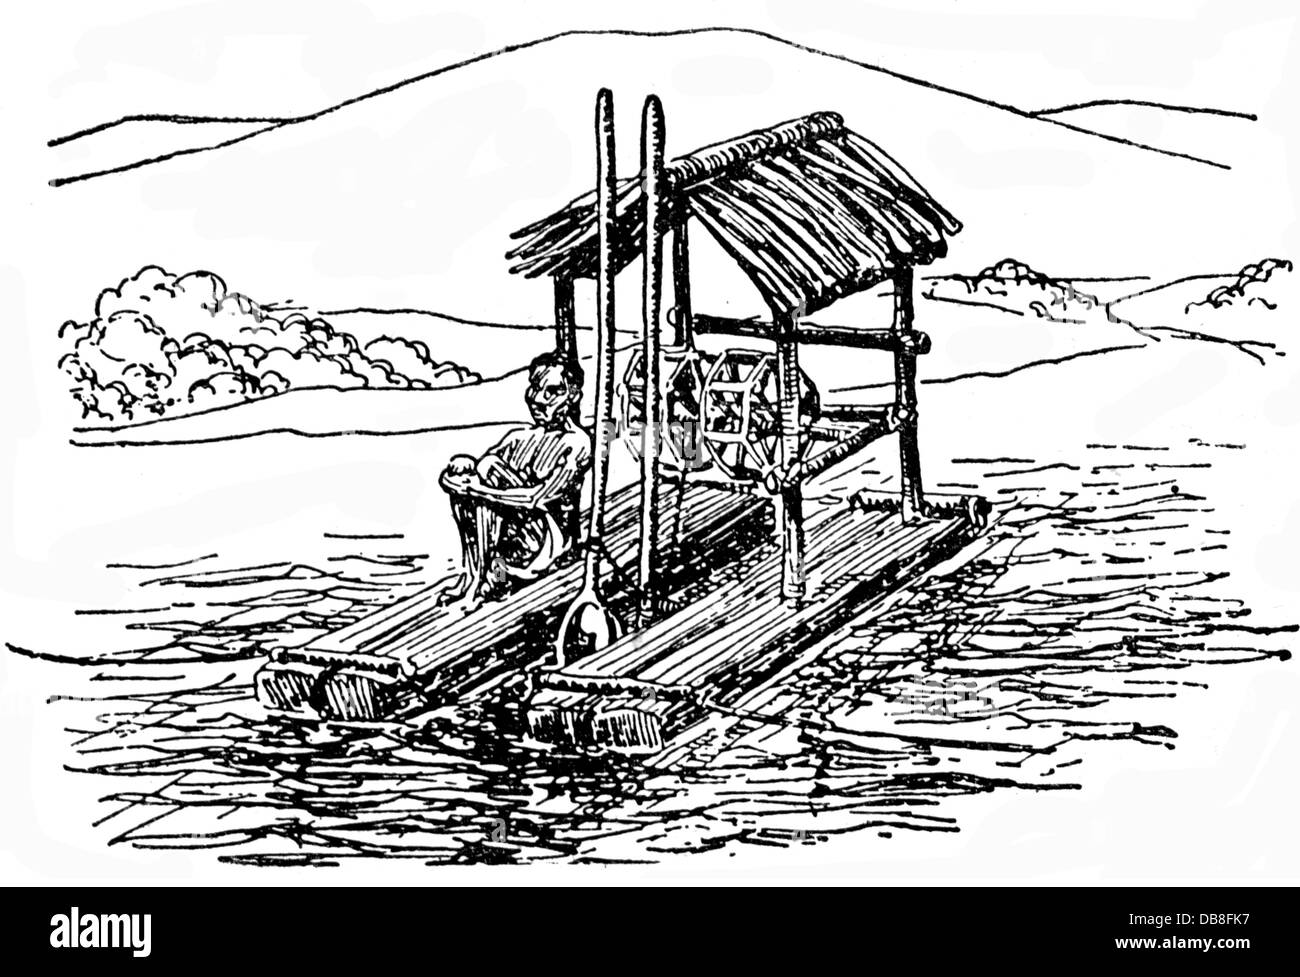 metal, gold, primitive digger for gold sand, Philippines, drawing, 20th century, 20th century, graphic, graphics, - Stock Image